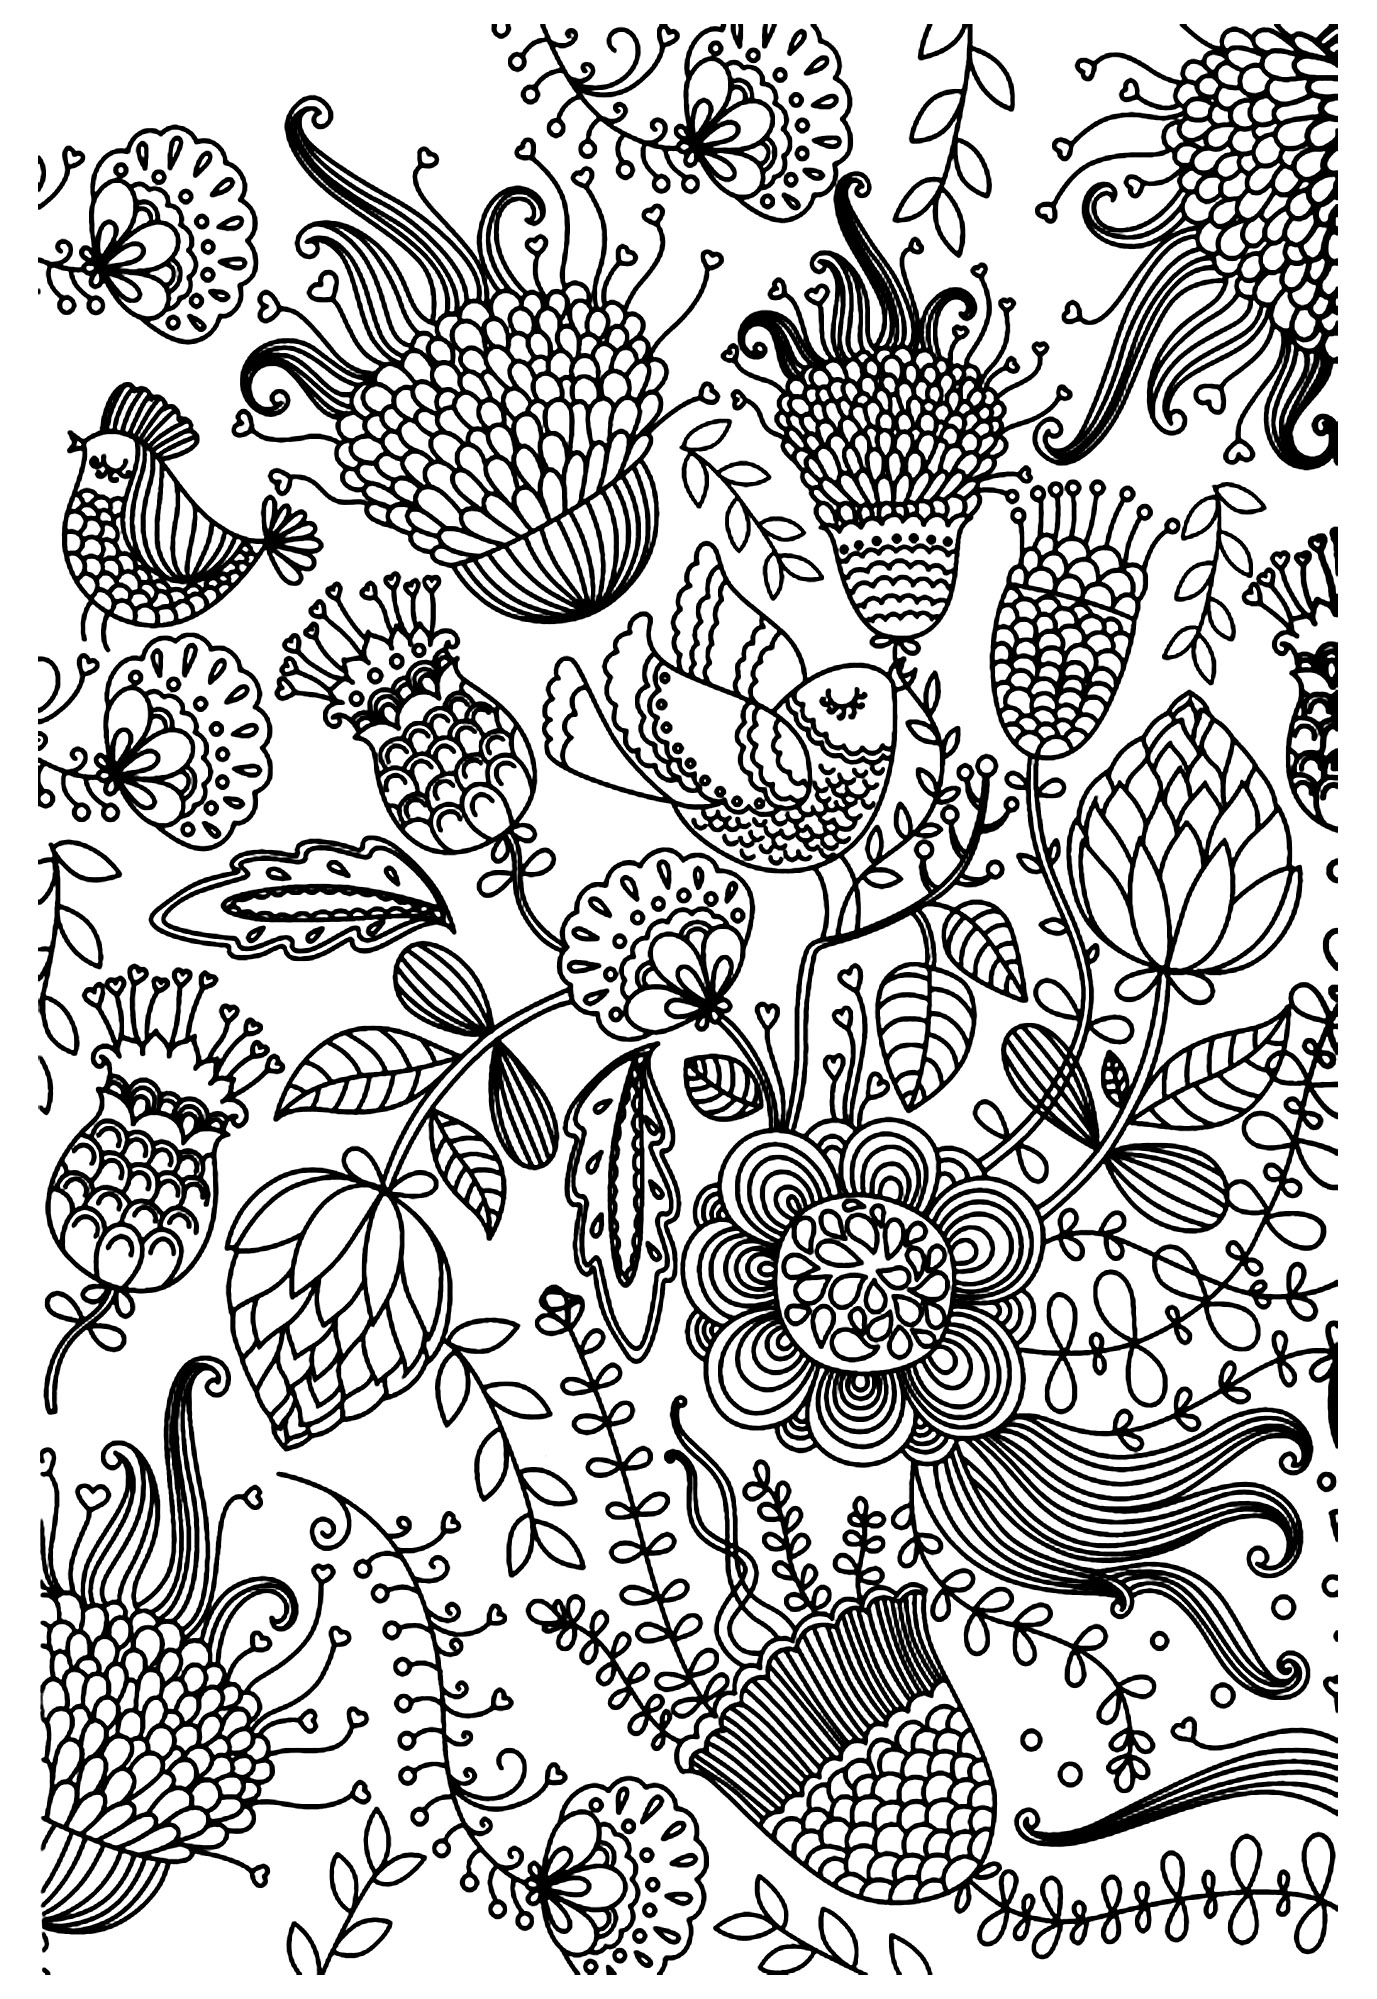 Antistress birds Anti stress Adult Coloring Pages